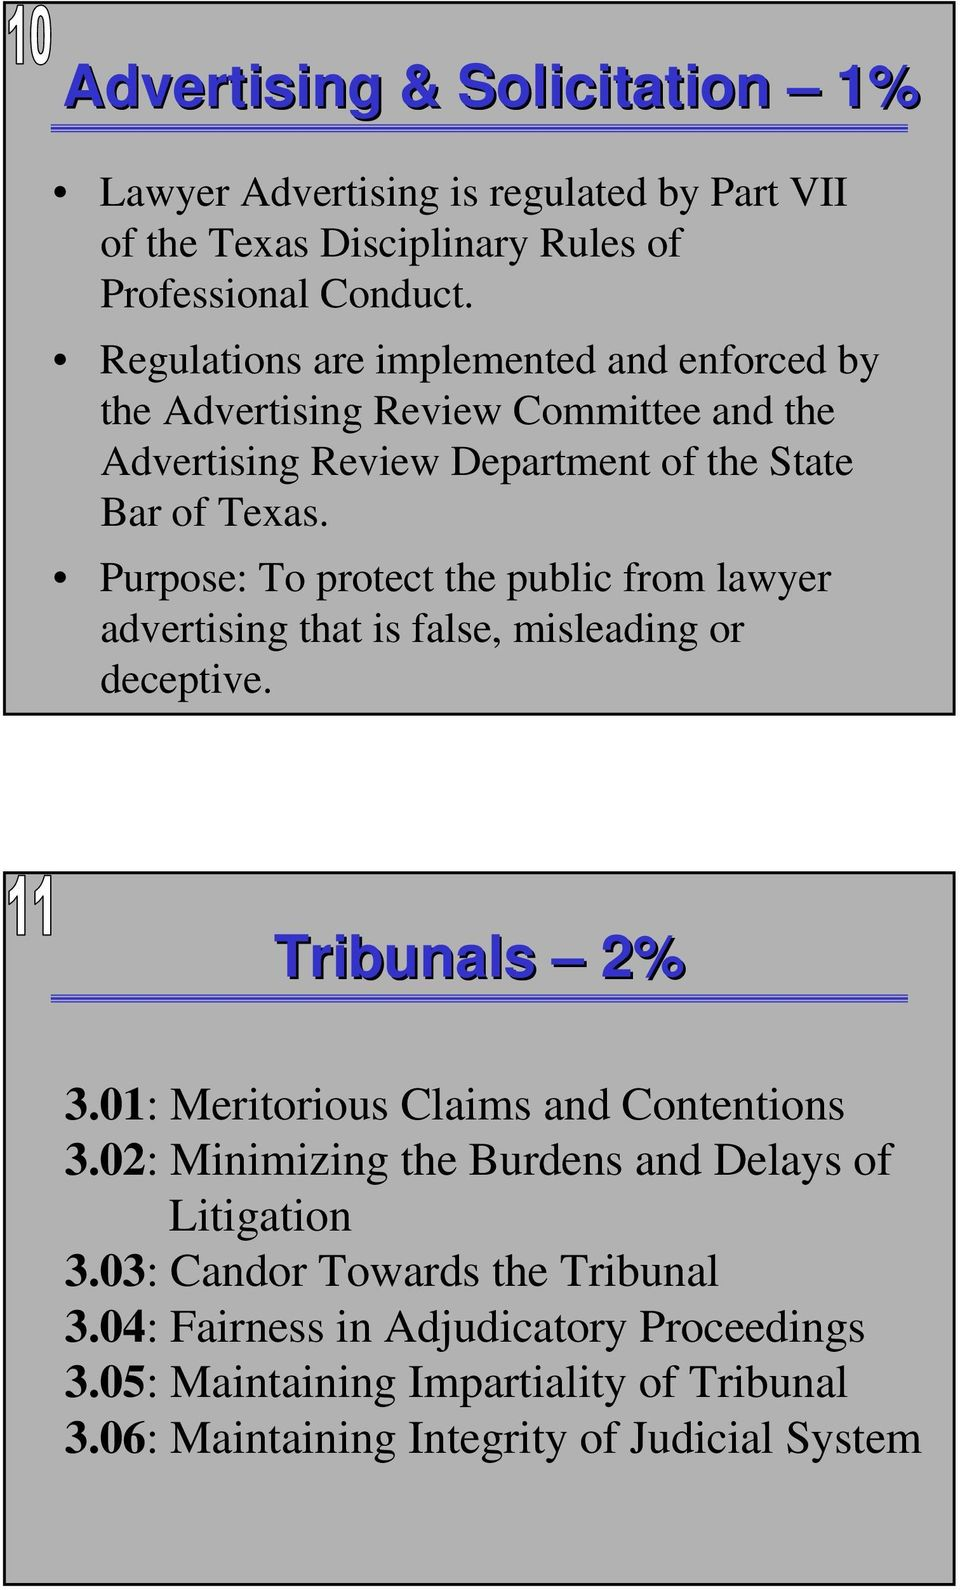 Purpose: To protect the public from lawyer advertising that is false, misleading or deceptive. Tribunals 2% 3.01: Meritorious Claims and Contentions 3.